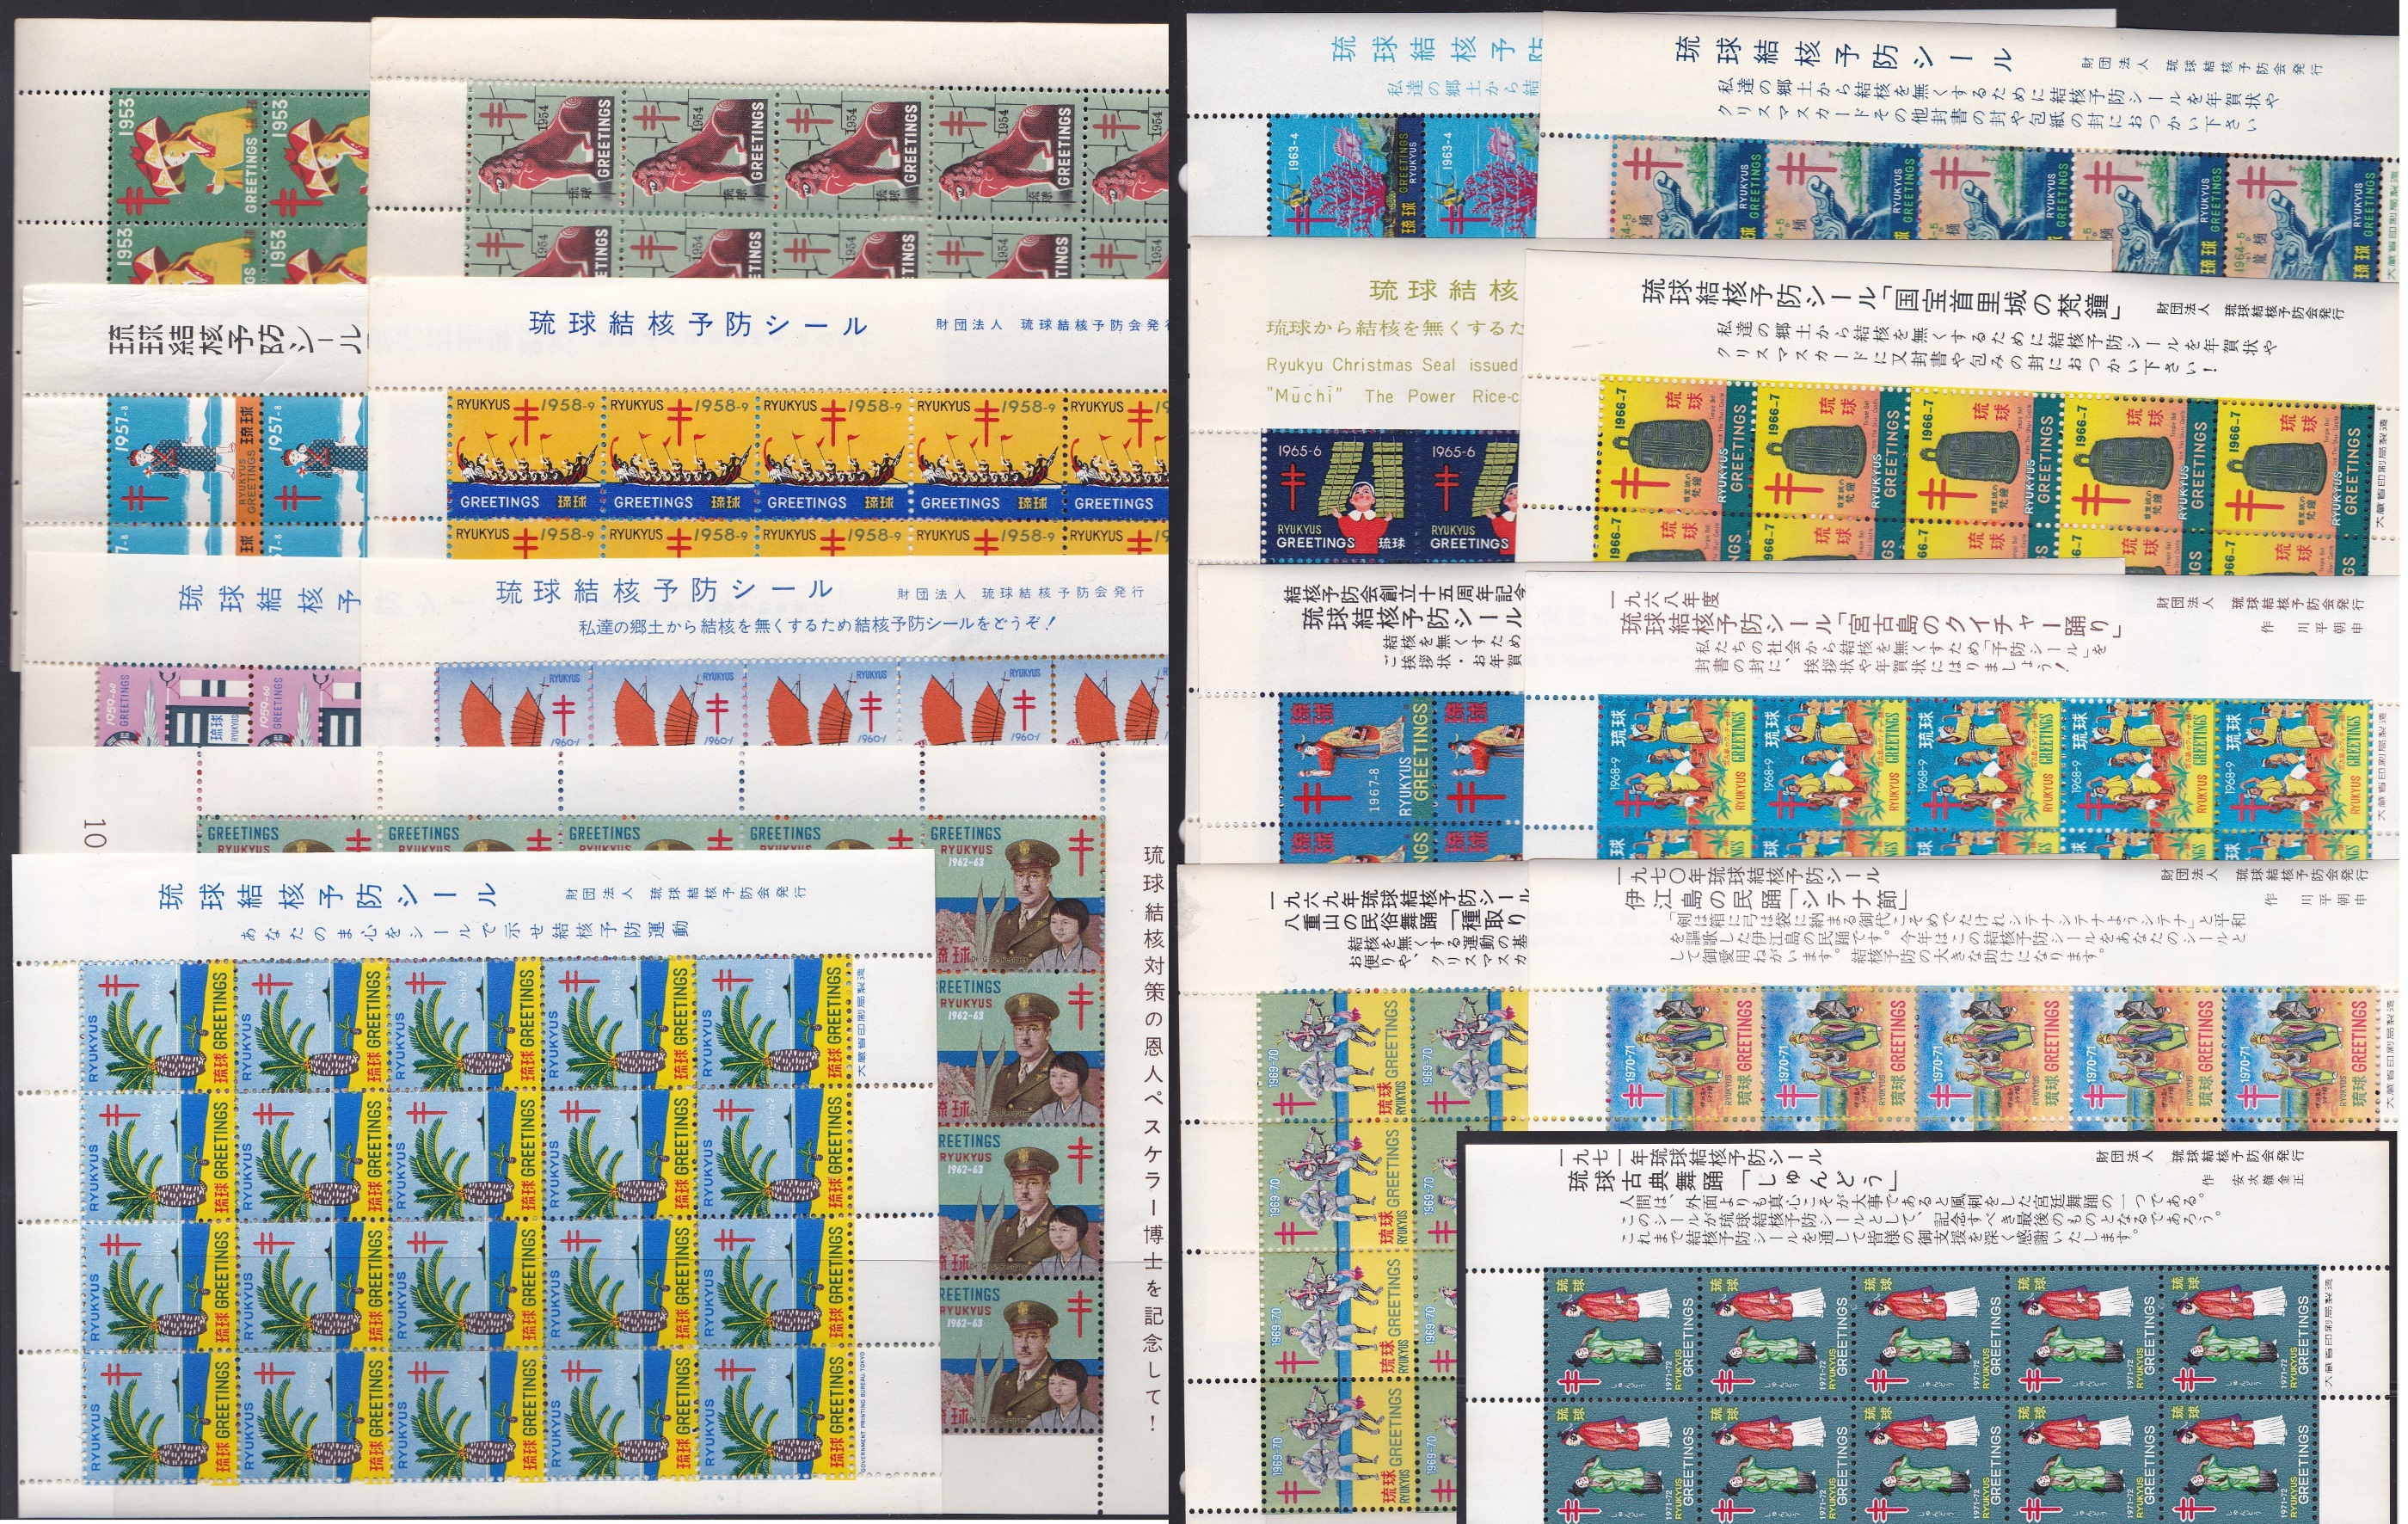 Ryukyu Christmas Seal Sheet Collection